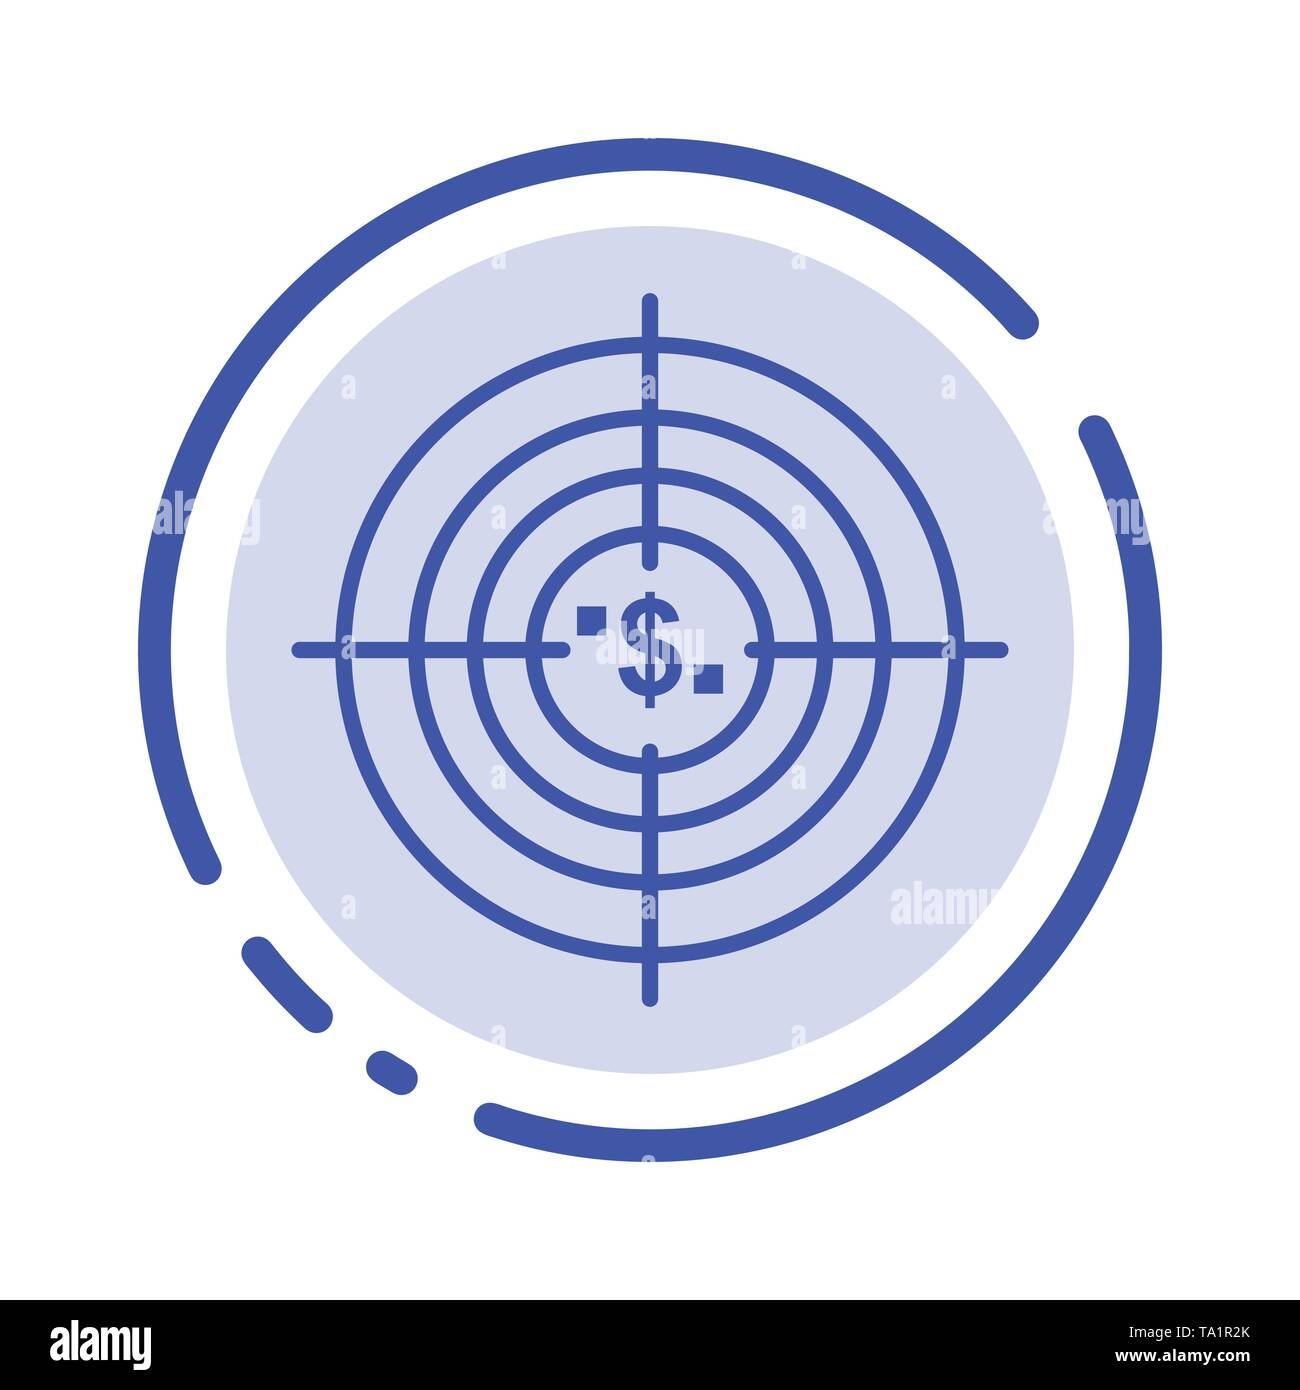 Target, Aim, Business, Cash, Financial, Funds, Hunting, Money Blue Dotted Line Line Icon - Stock Image